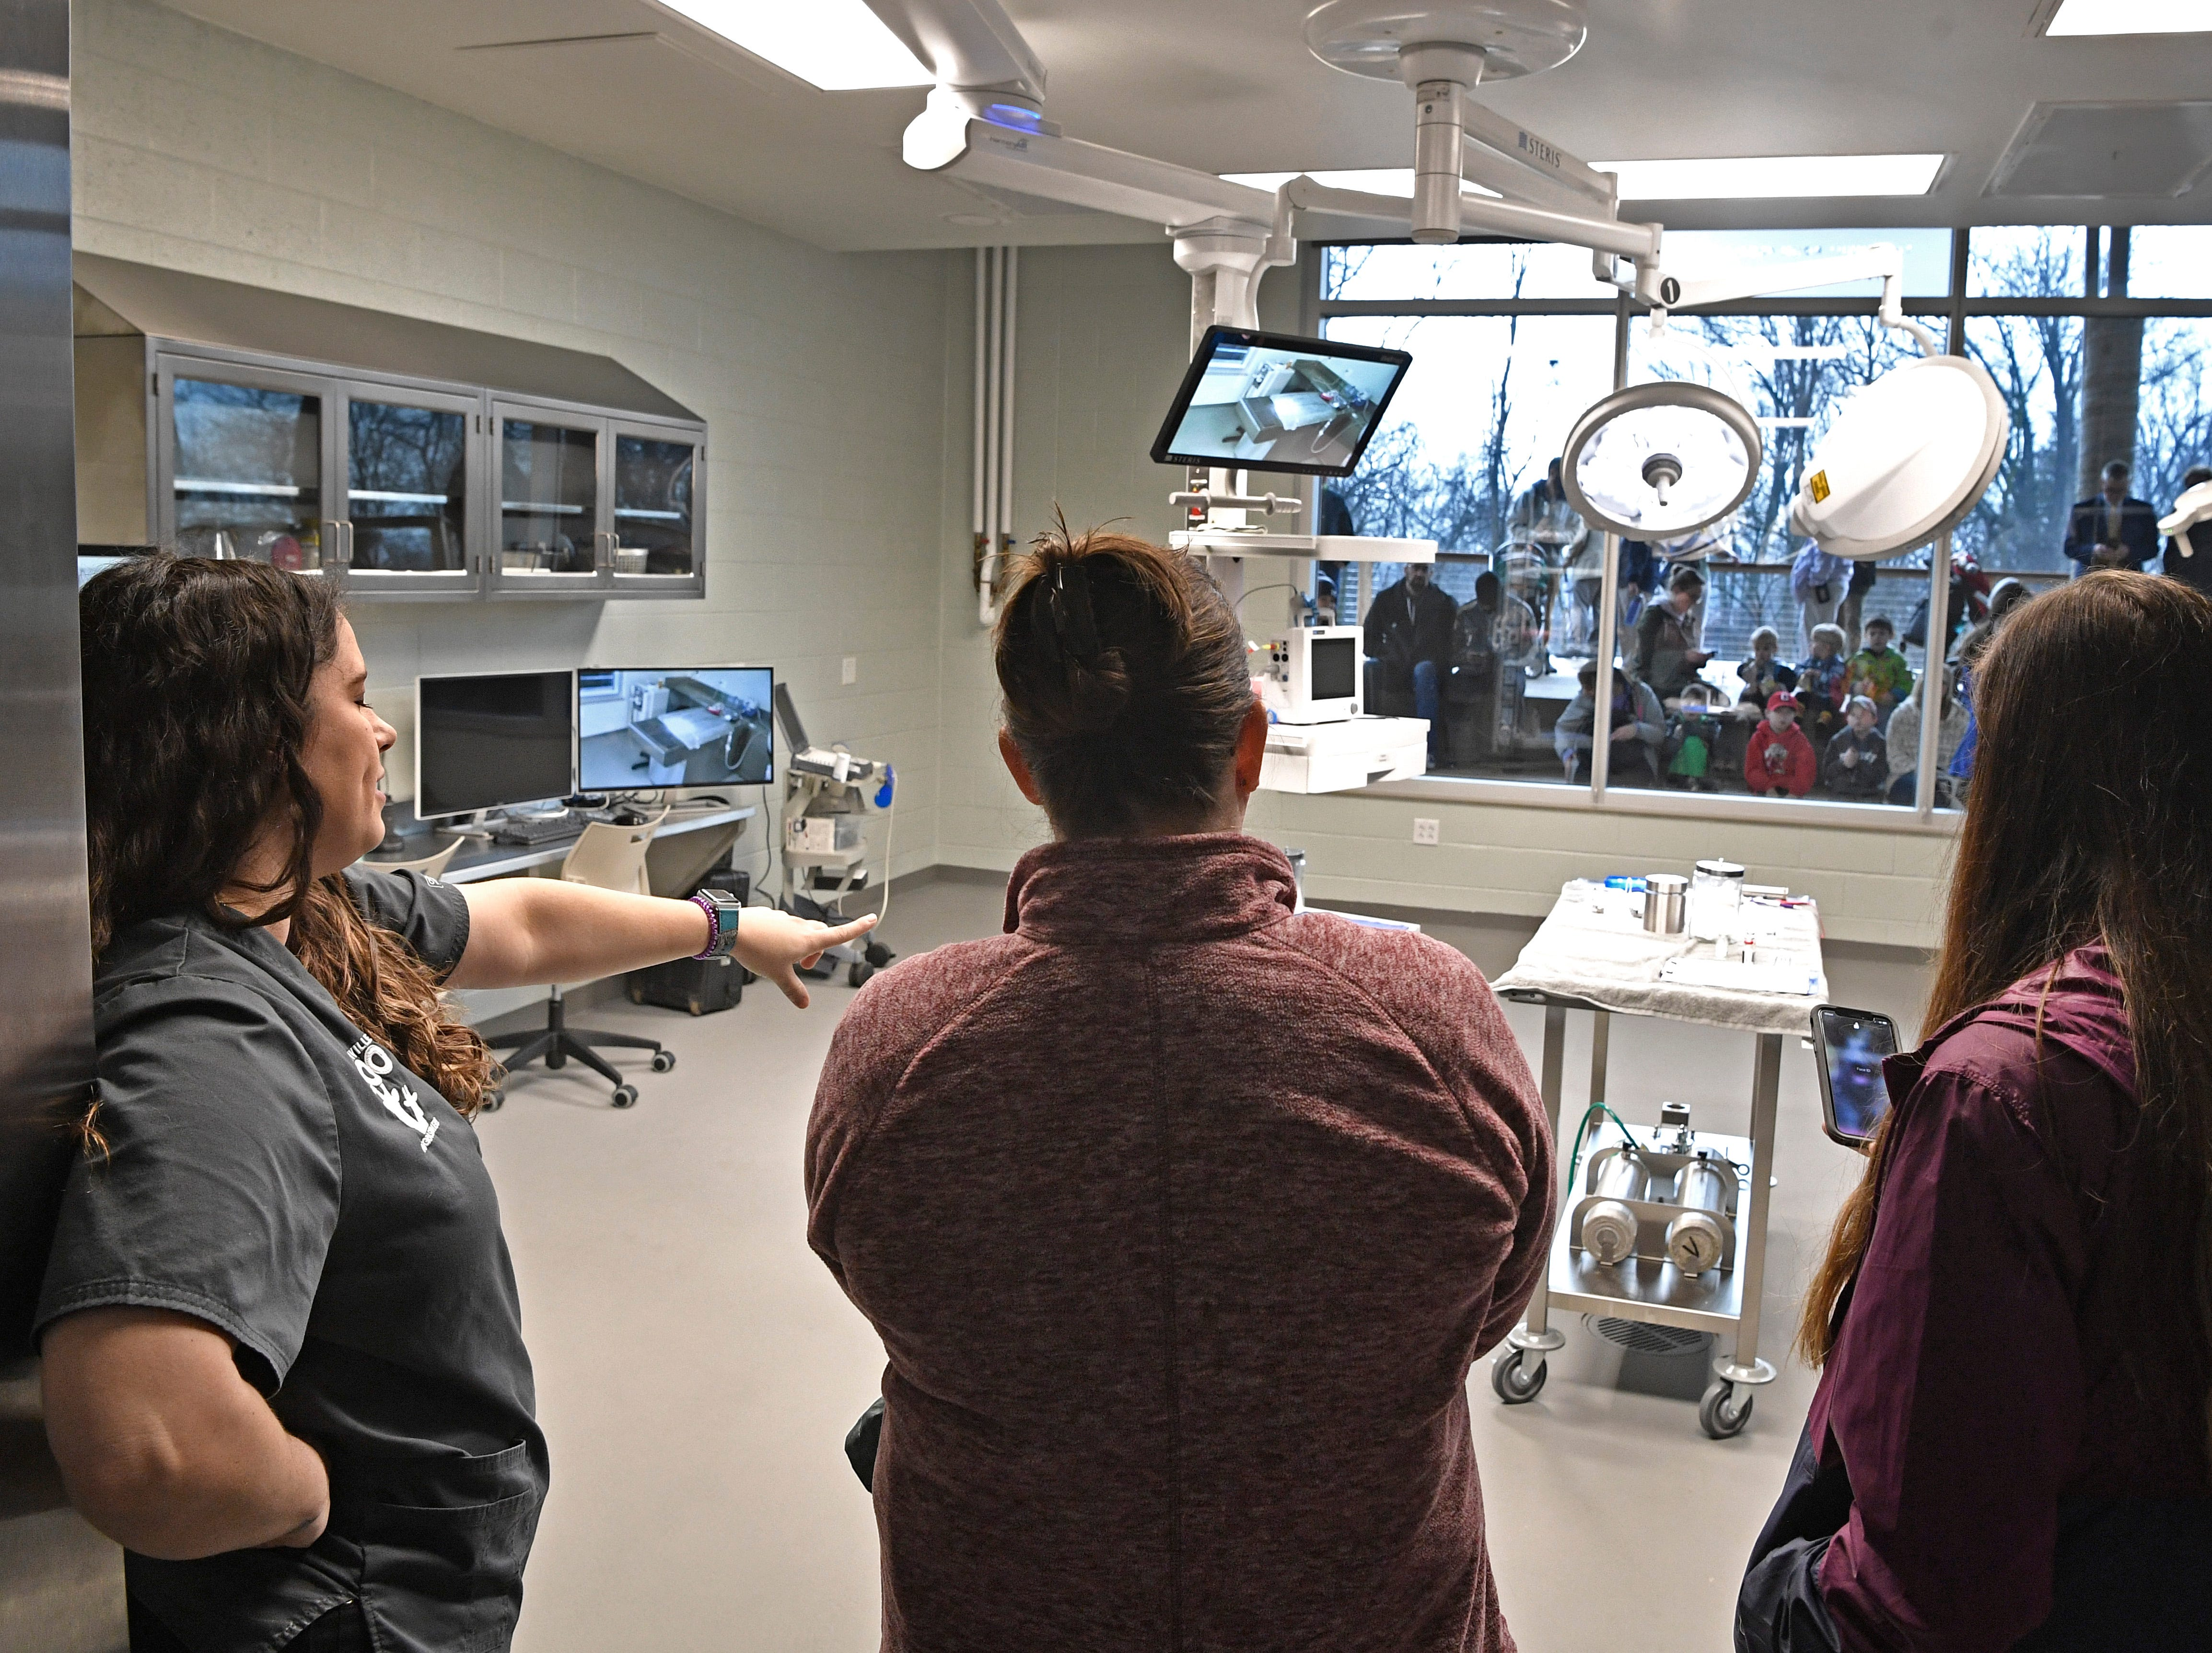 Visitors took a tour of the new 23,000 square-foot HCA Healthcare Veterinary Center at the Nashville Zoo.